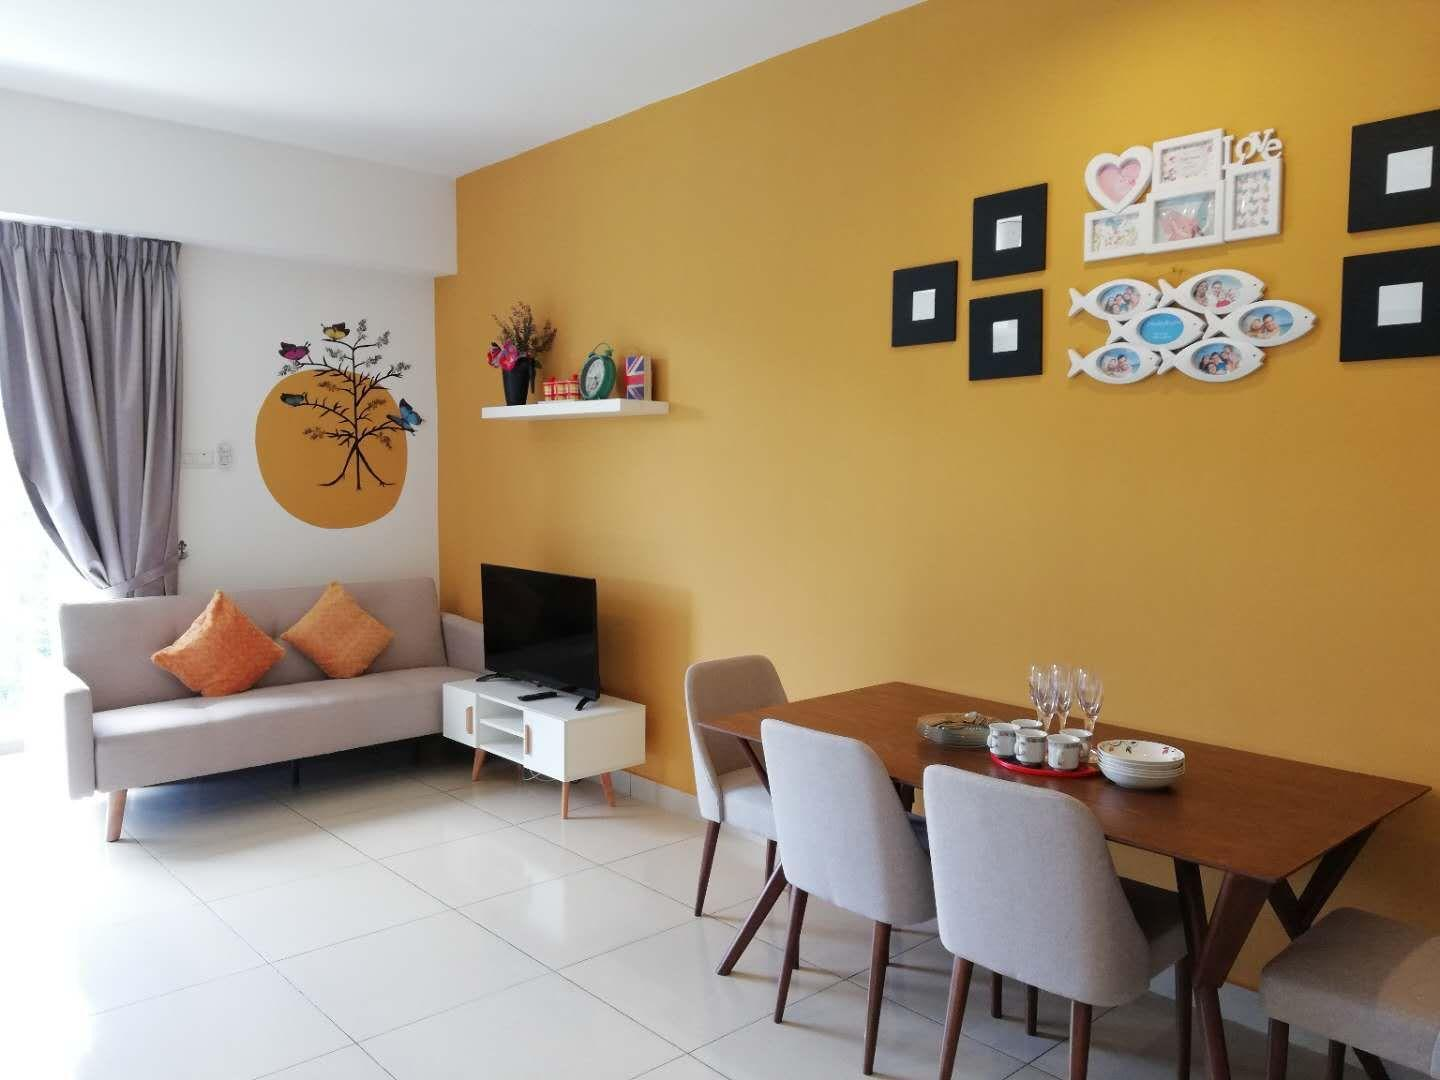 Home Sweet Home 1202 Midhills Genting Highlands